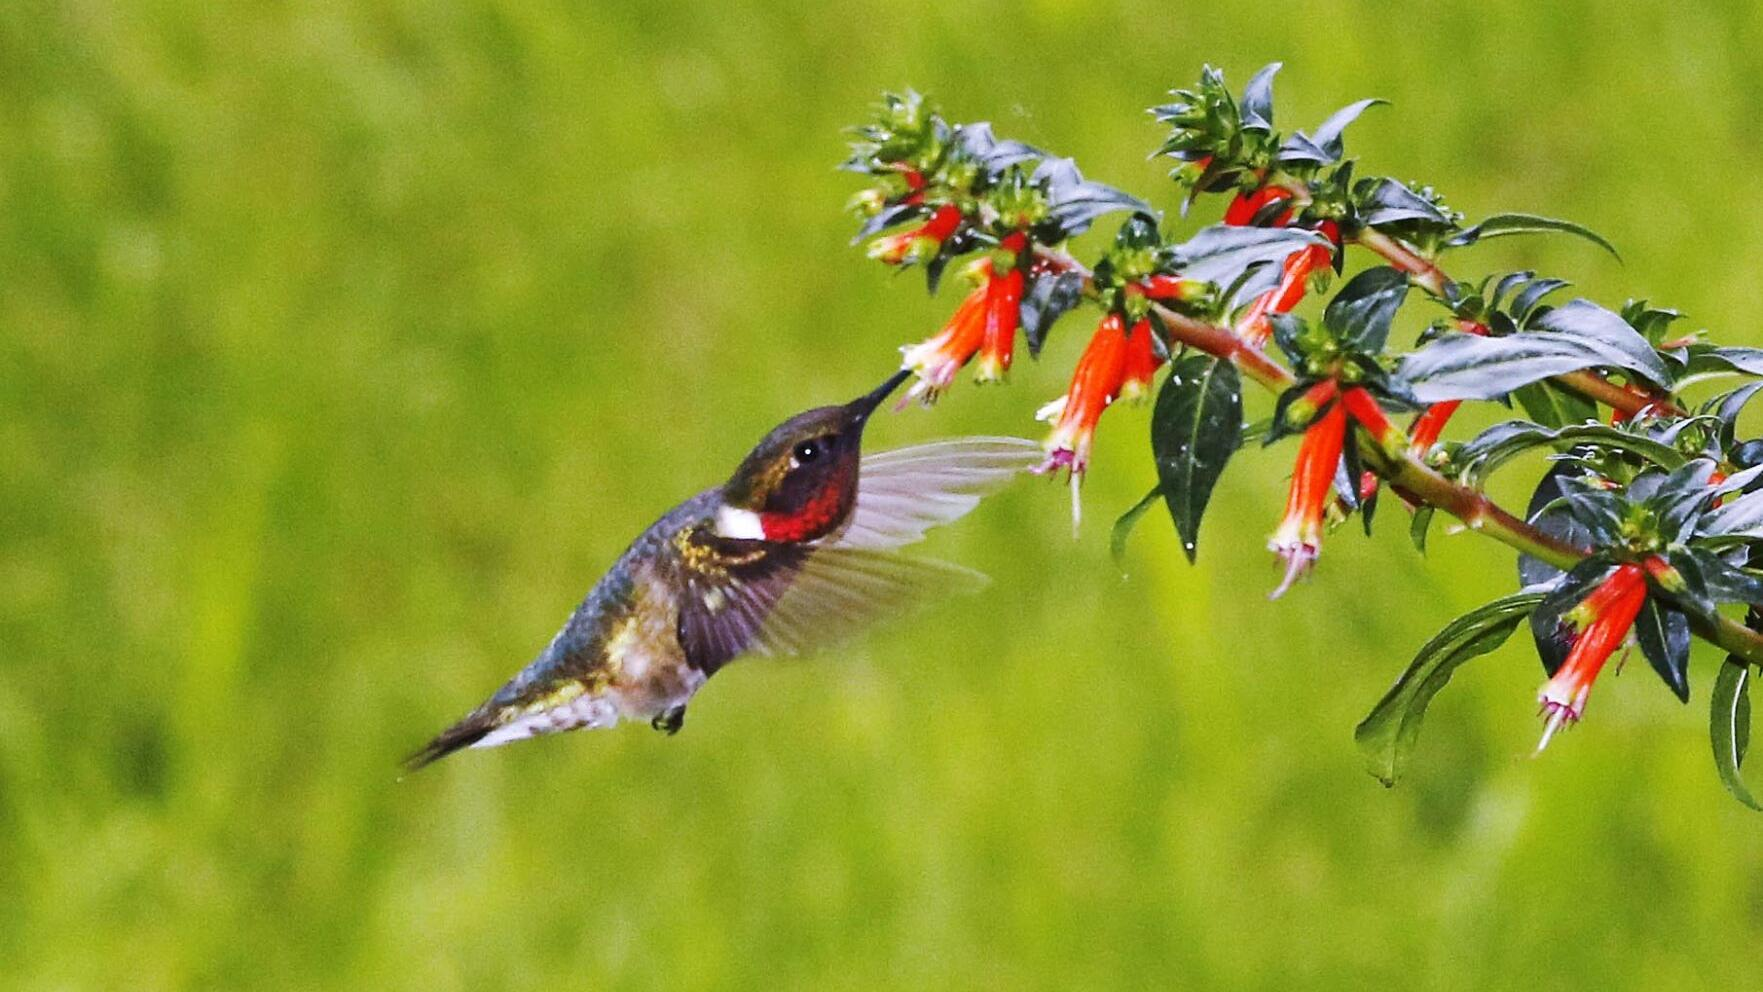 Thom Smith: Hummingbirds return to summer in the Berkshires